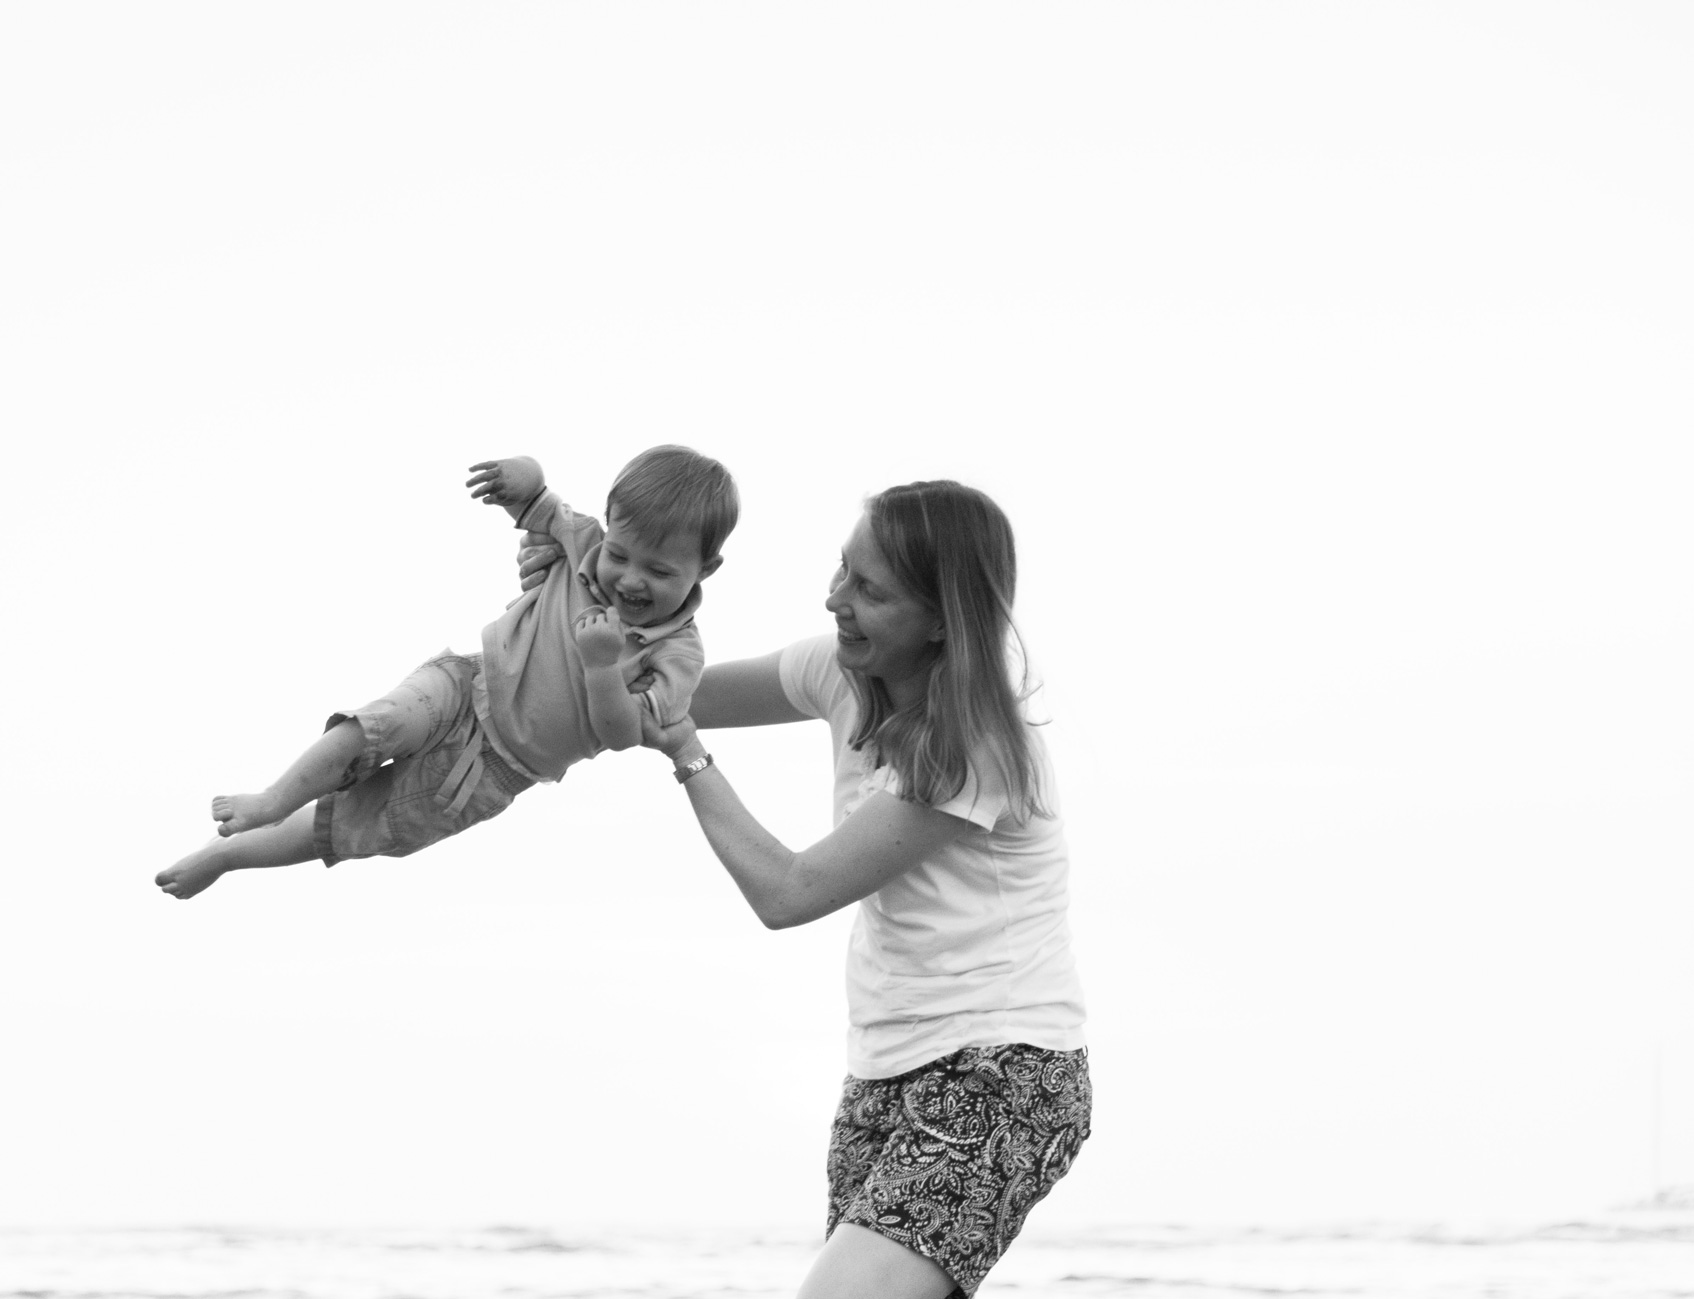 Mom spinning her young son in Tamarindo, Costa Rica. Photographed by Kristen M. Brown, Samba to the Sea Photography.